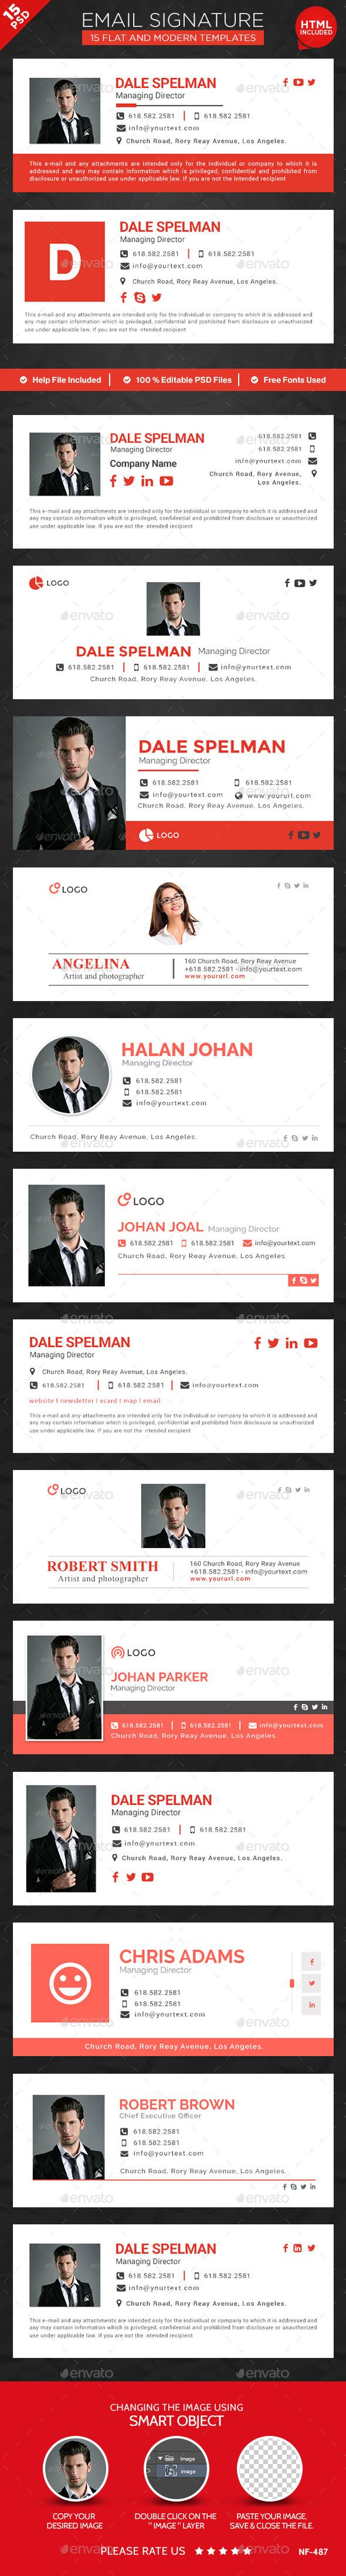 15 Email Signature Templates - HTML Files Included                                                                                                                                                      More